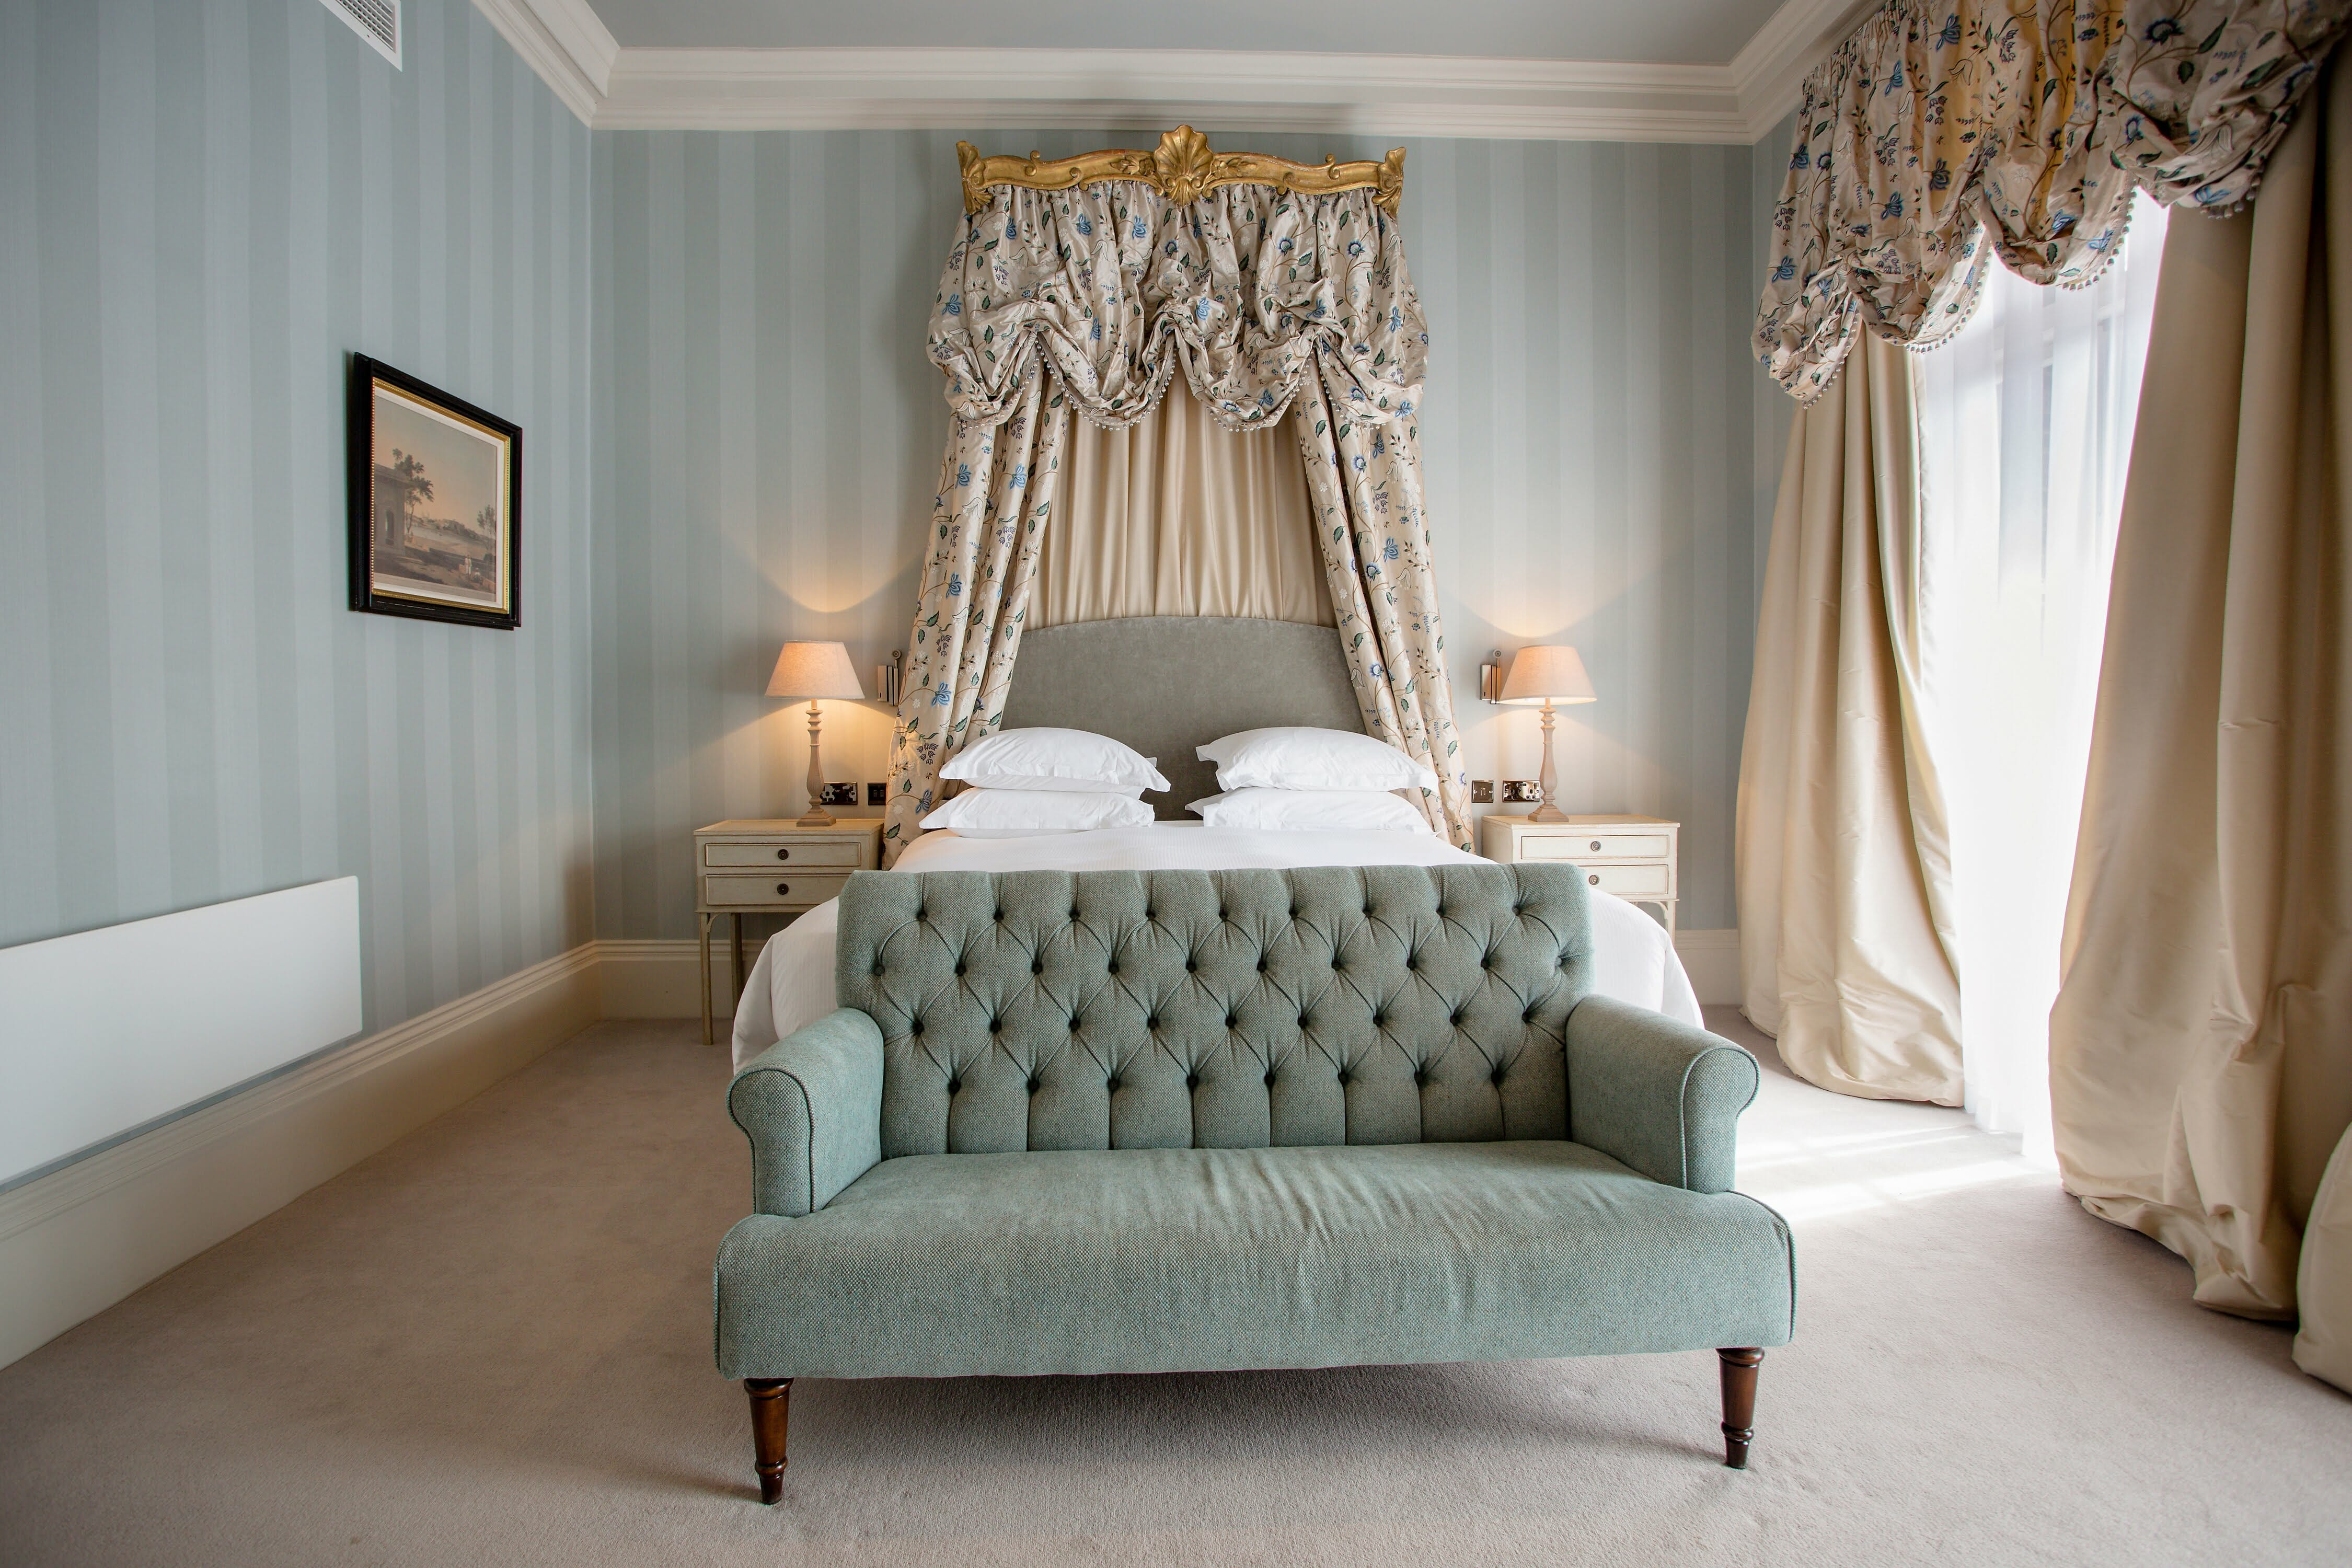 Junior Suite1 Escape to The Grange Hotel for an Intimate Country House Setting in York EAT LOVE SAVOR International luxury lifestyle magazine and bookazines